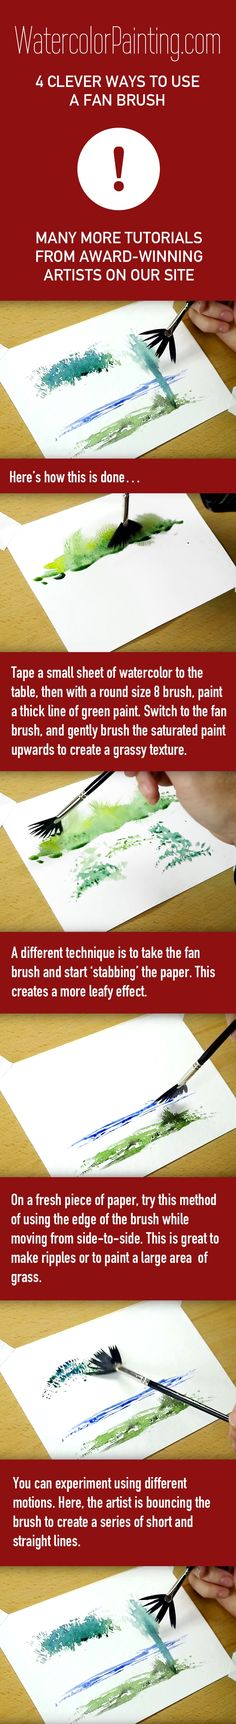 Click here for free full tutorial: http://bit.ly/1lCdYXy Includes video. Learn how to turn your fan brush into your new favorite brush with these 4 nifty watercolor techniques. Various beginner, intermediate & advanced watercolor techniques are taught on this site. #paintingideas